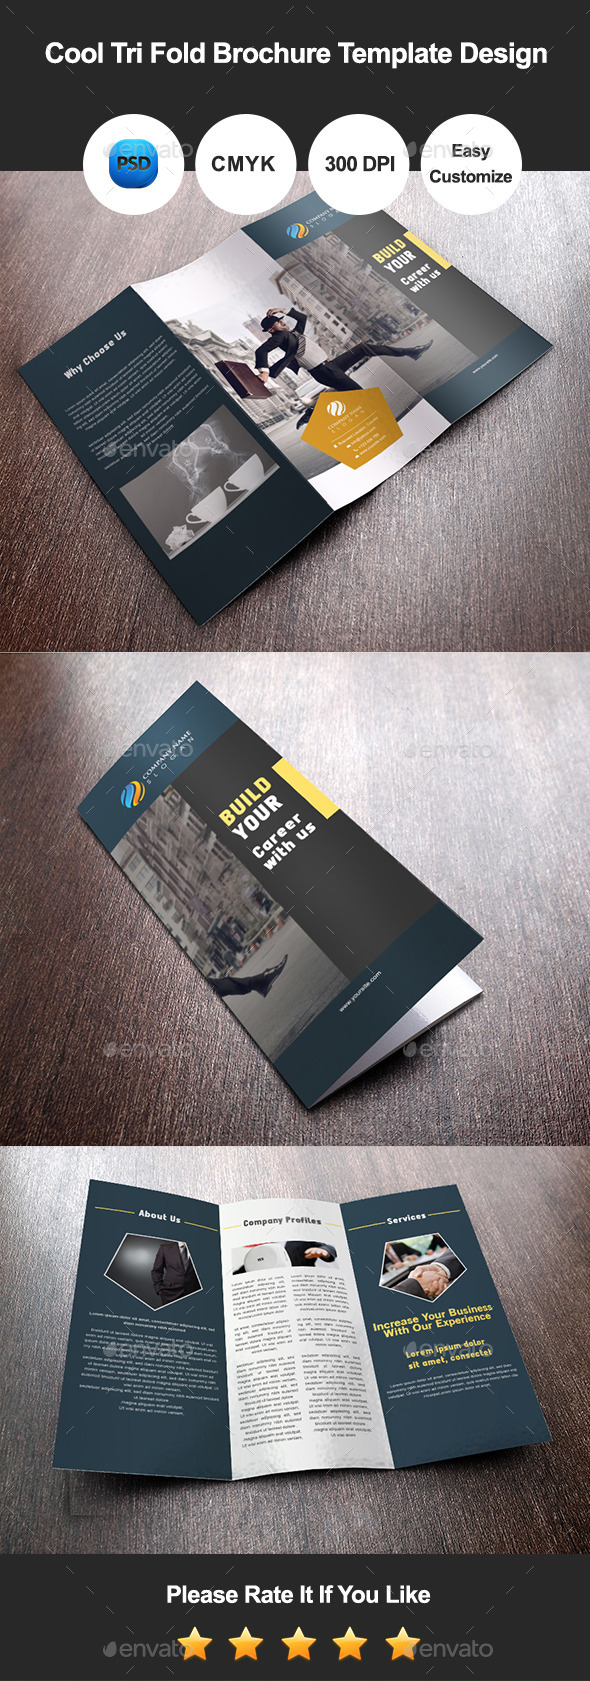 GraphicRiver Cool Tri Fold Brochure Template Design 8982054